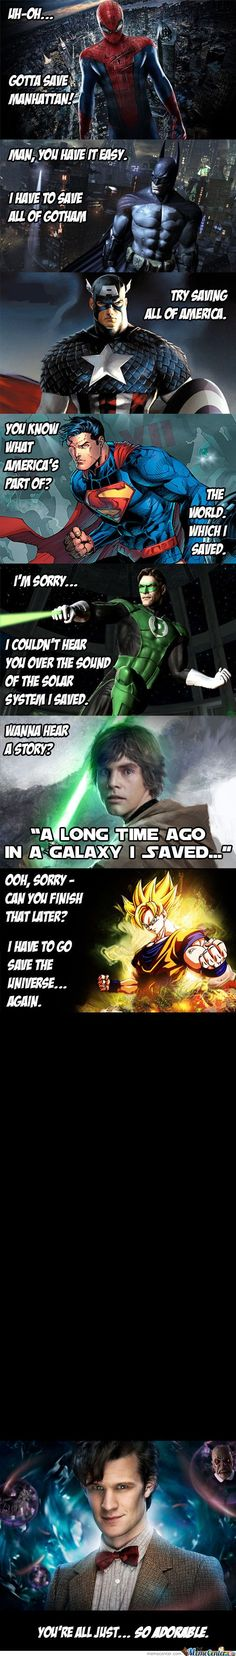 haha, the doctor saved everything, including outside the universe!